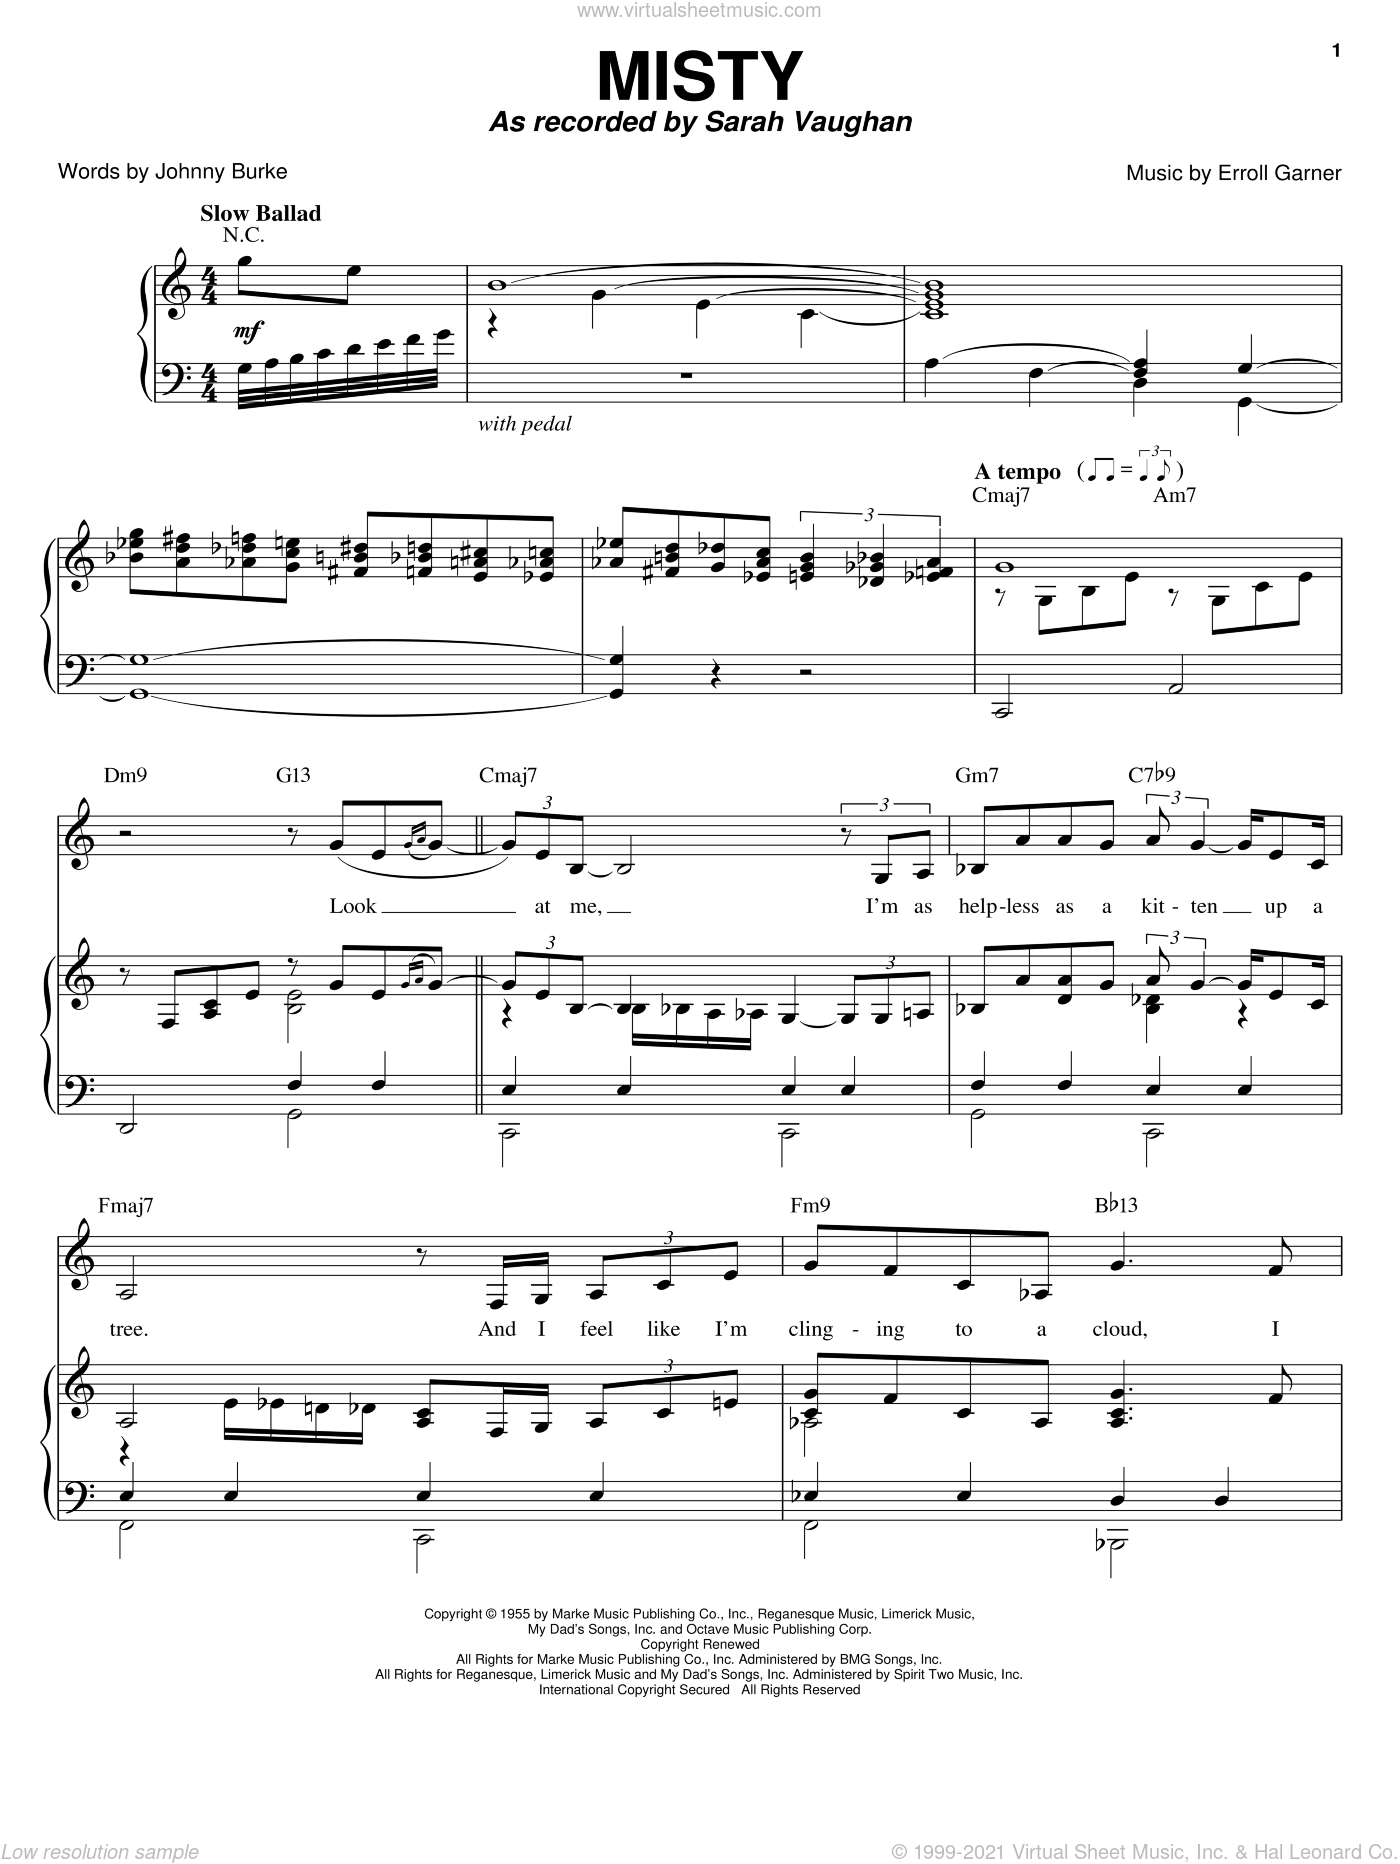 Misty sheet music for voice, piano or guitar by John Burke, Ella Fitzgerald, Johnny Mathis, Kenny Rogers, Ray Stevens, Sarah Vaughan and Erroll Garner. Score Image Preview.